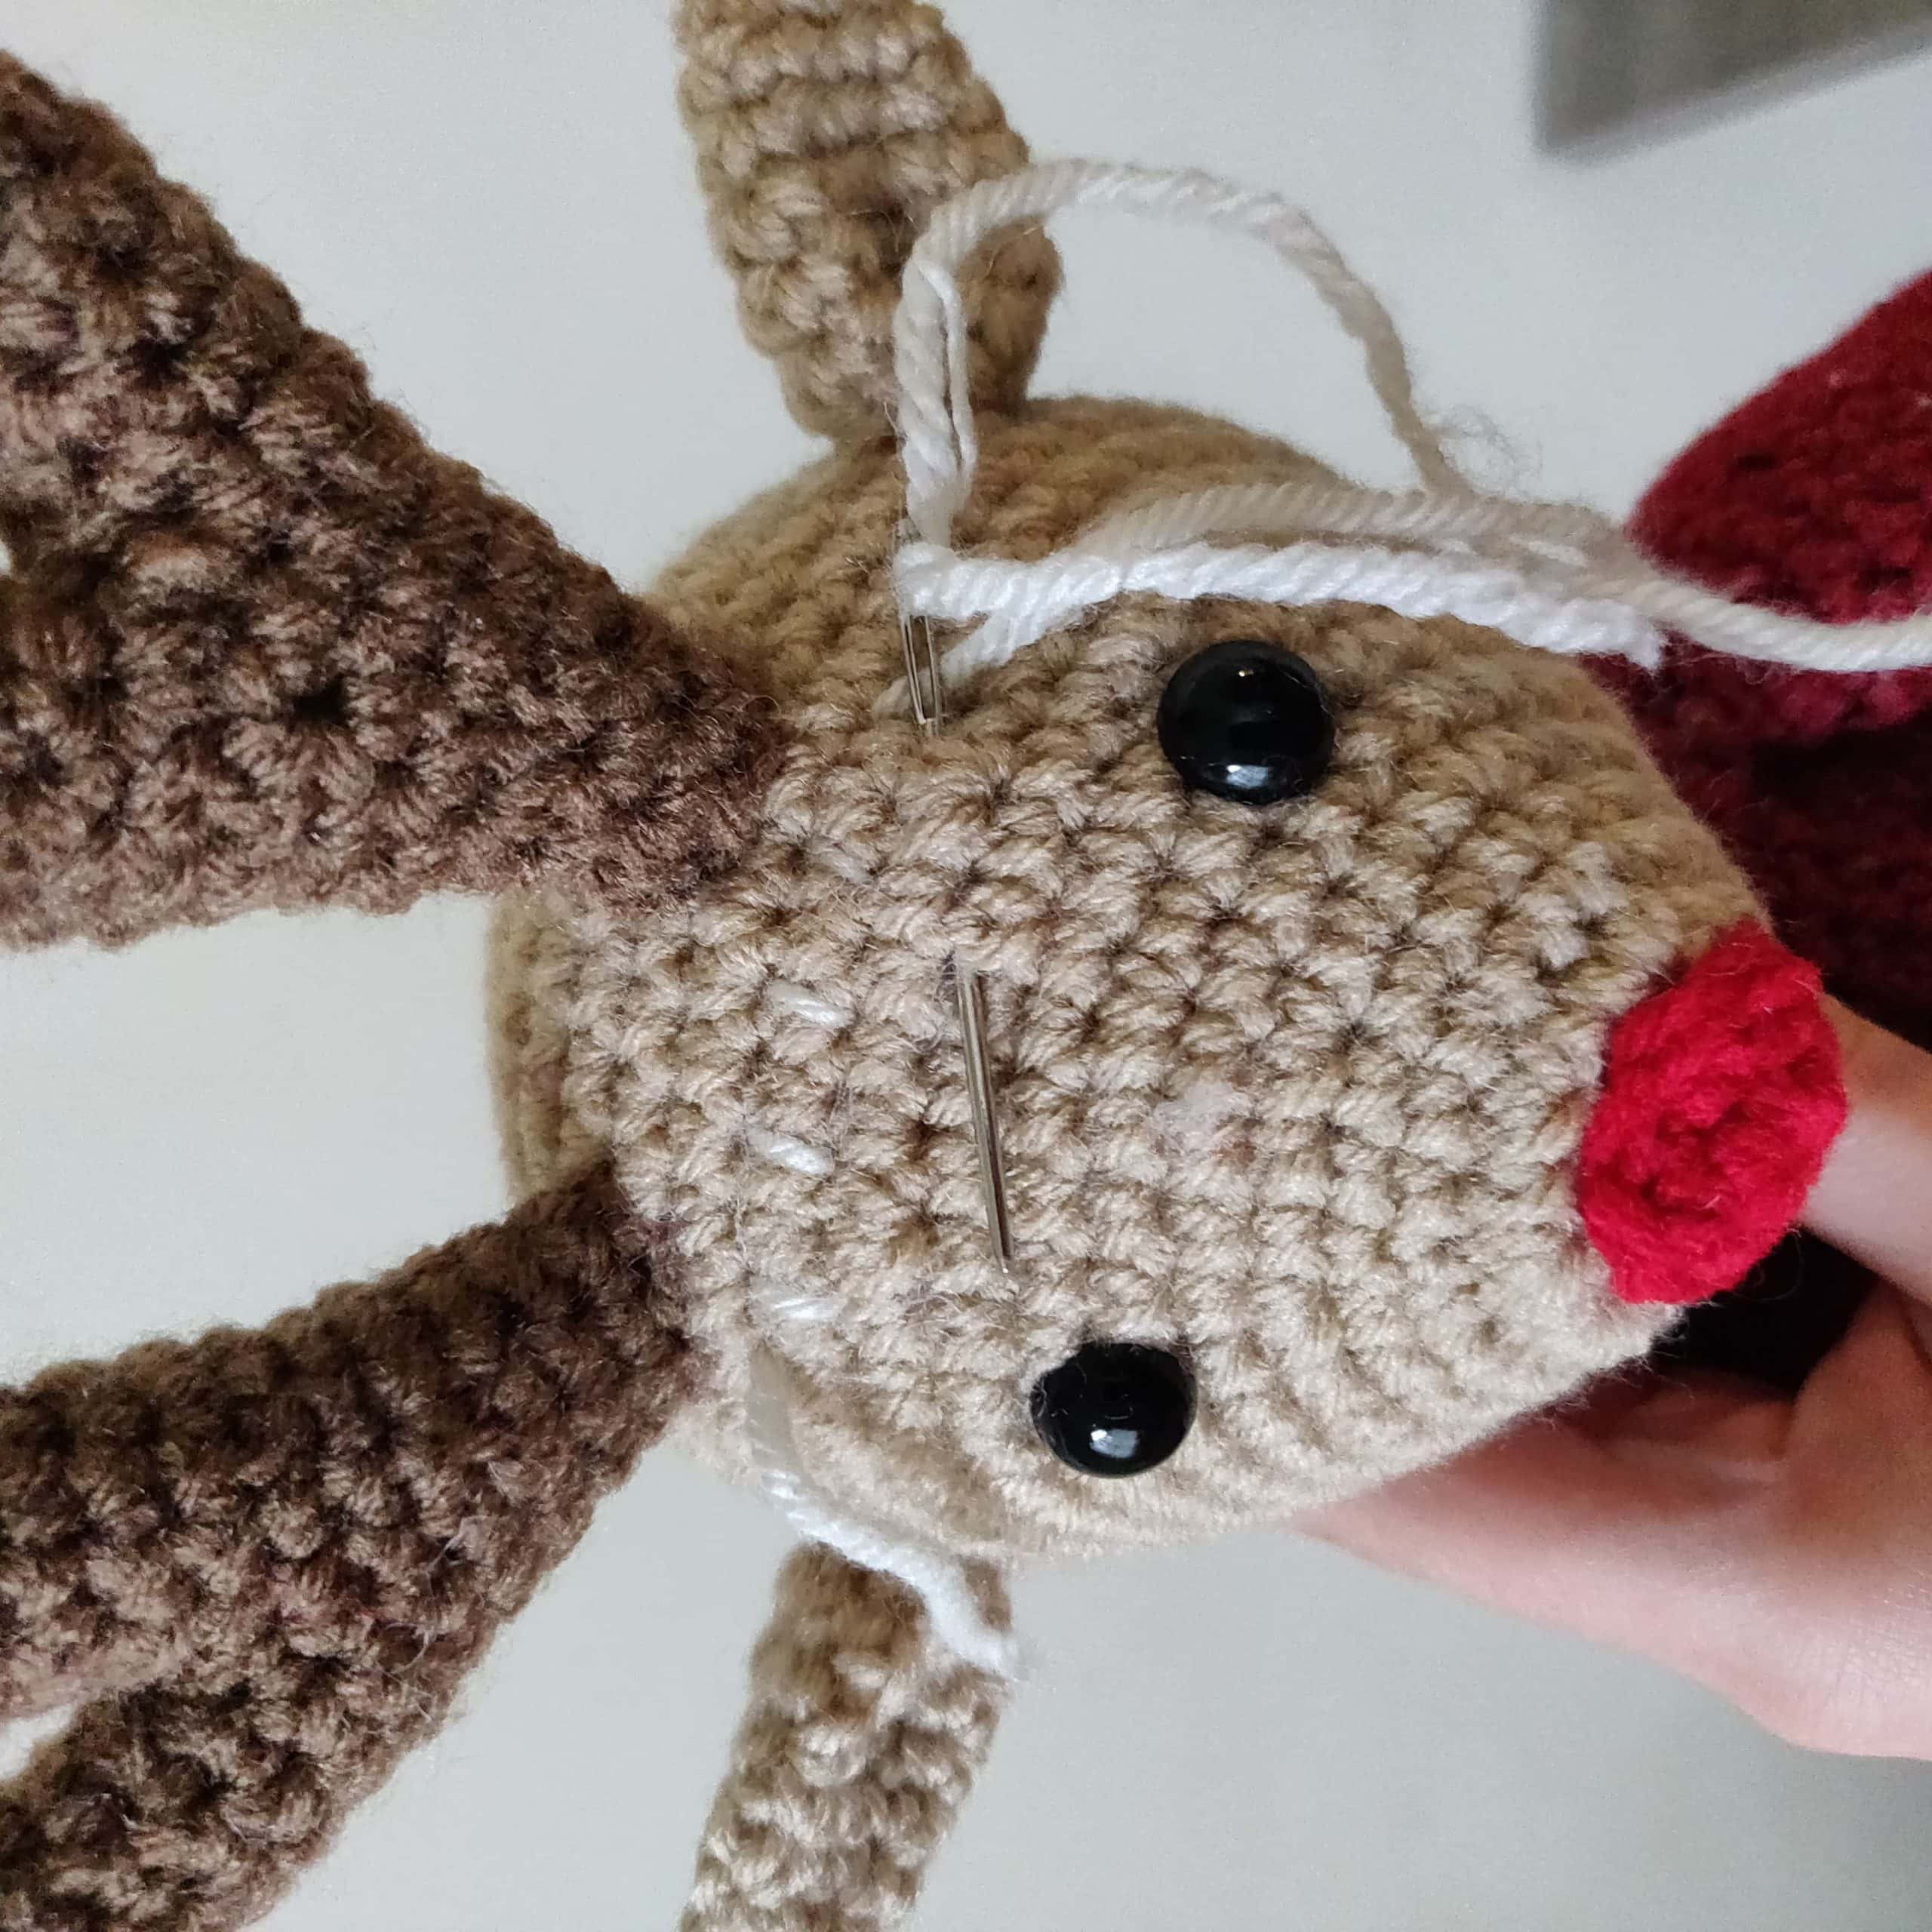 Sewing Aspen the reindeer with white yarn.